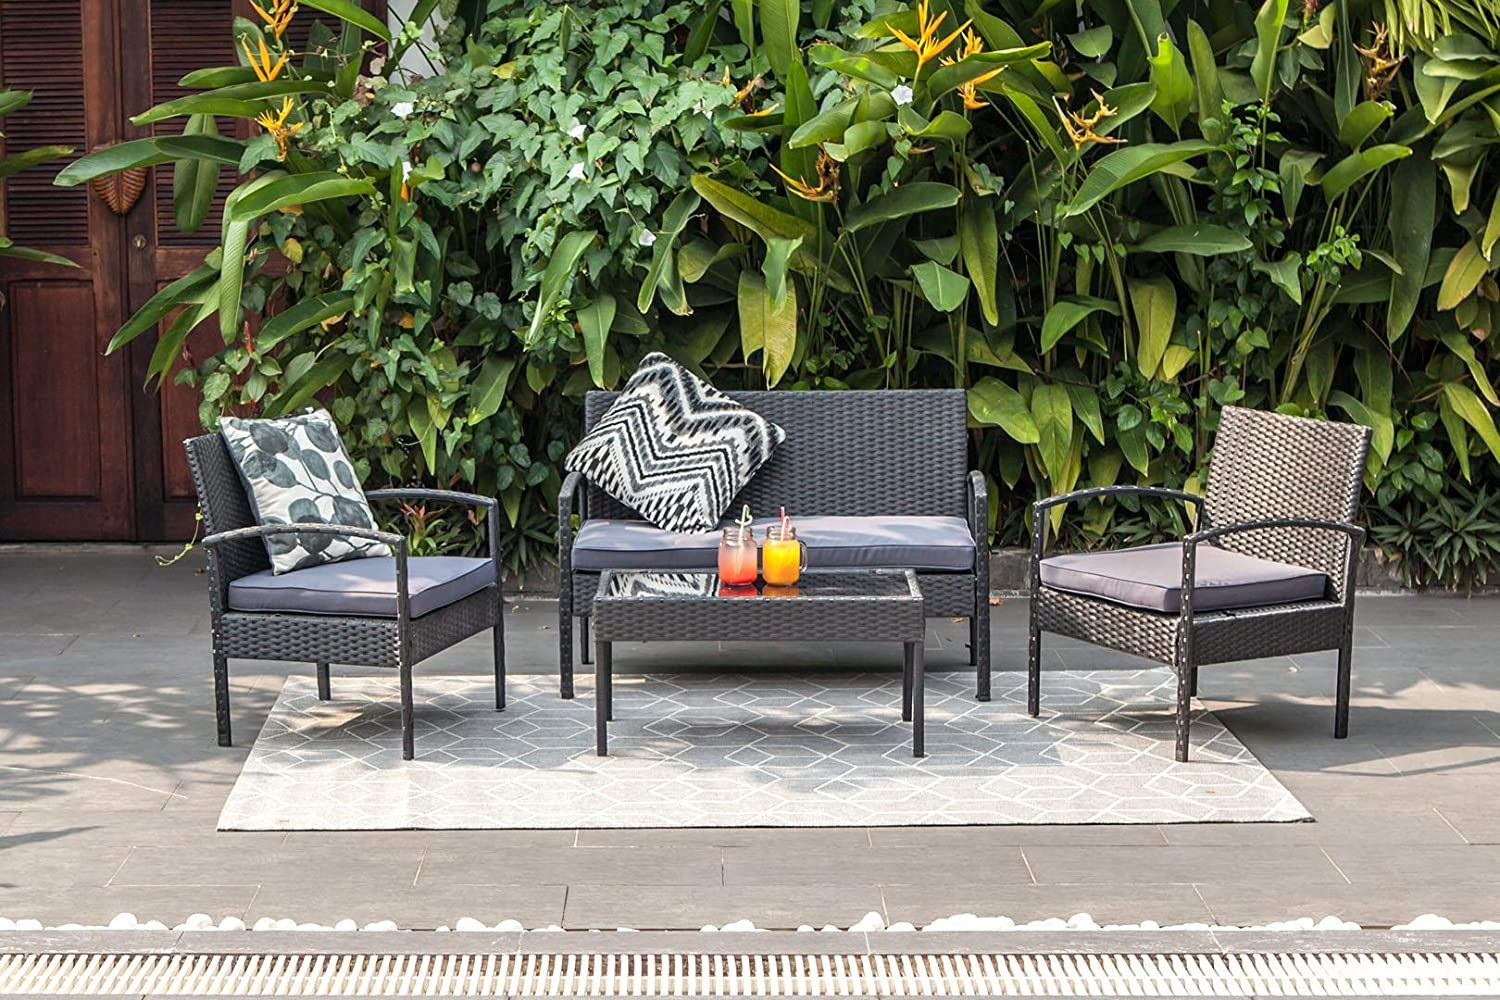 M&W 4 Piece Patio Furniture Set, PE Wicker Rattan Outdoor Sofa, 2 Cushioned Chairs, 1 Loveseat and 1 Coffee Table with Tempered Glass Top for Garden, Backyard, Porch, Balcony, Lawn, Poolside